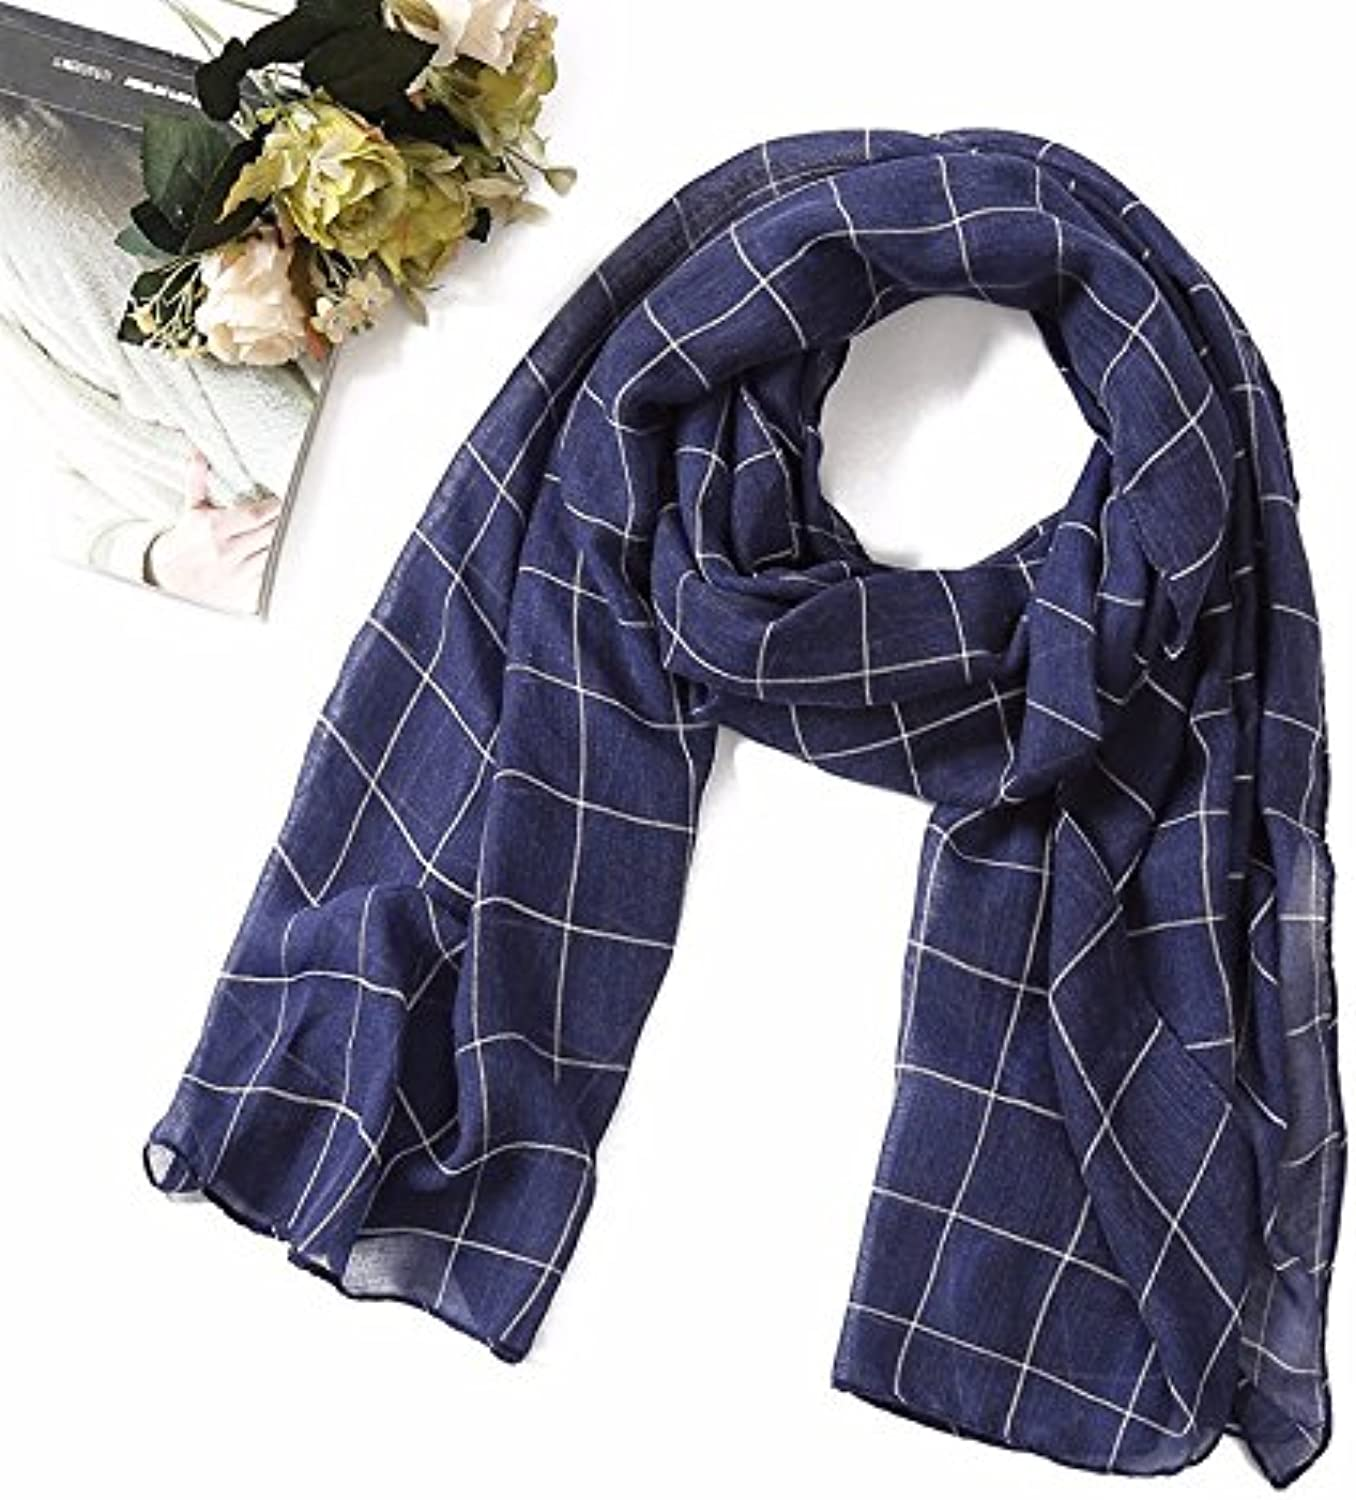 Ahuiopl New Spring Women Scarf Fashion Plaid Cotton Scarves Shawls and Wraps Soft Large Size Lady Scarves Foulard Hijabs